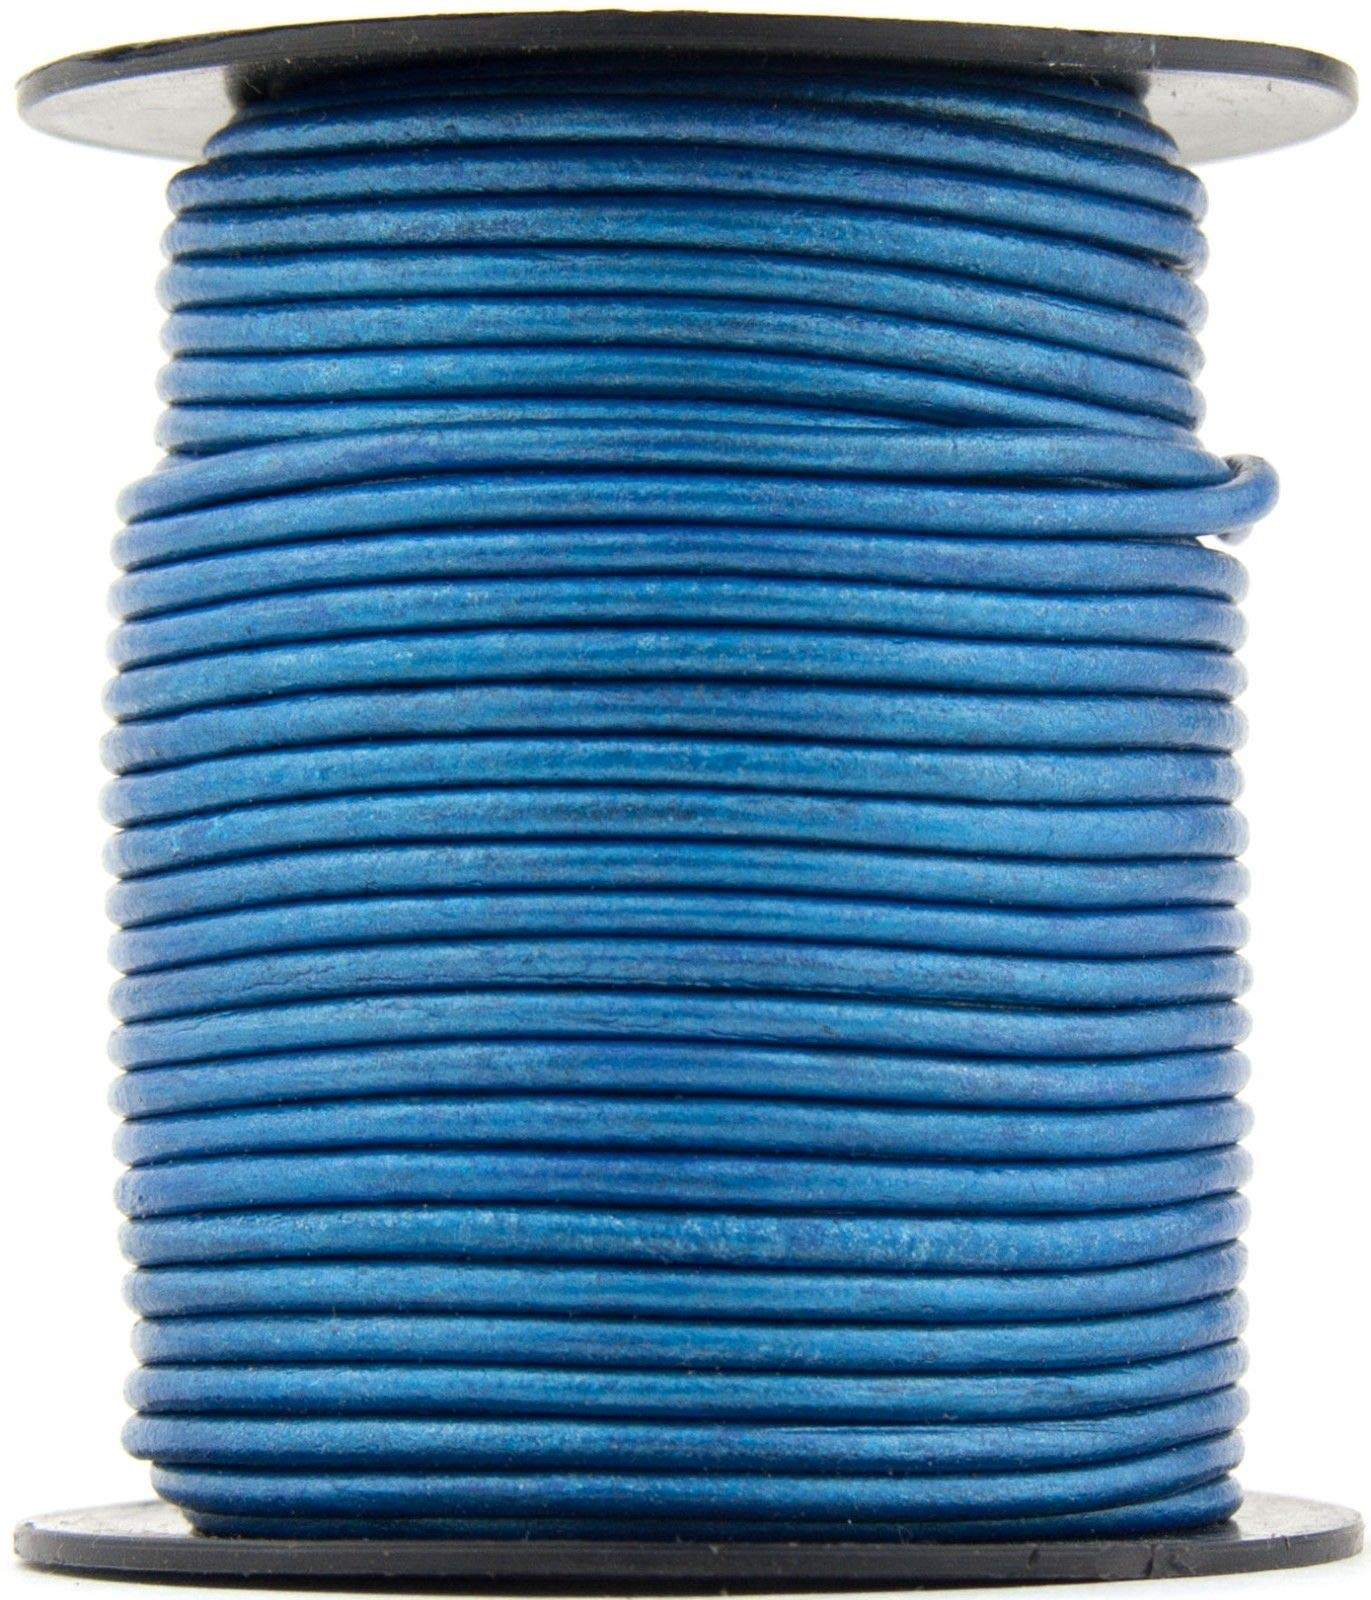 Blue Metallic Round Leather Cord 2mm 25 Meters (27.34 Yards)